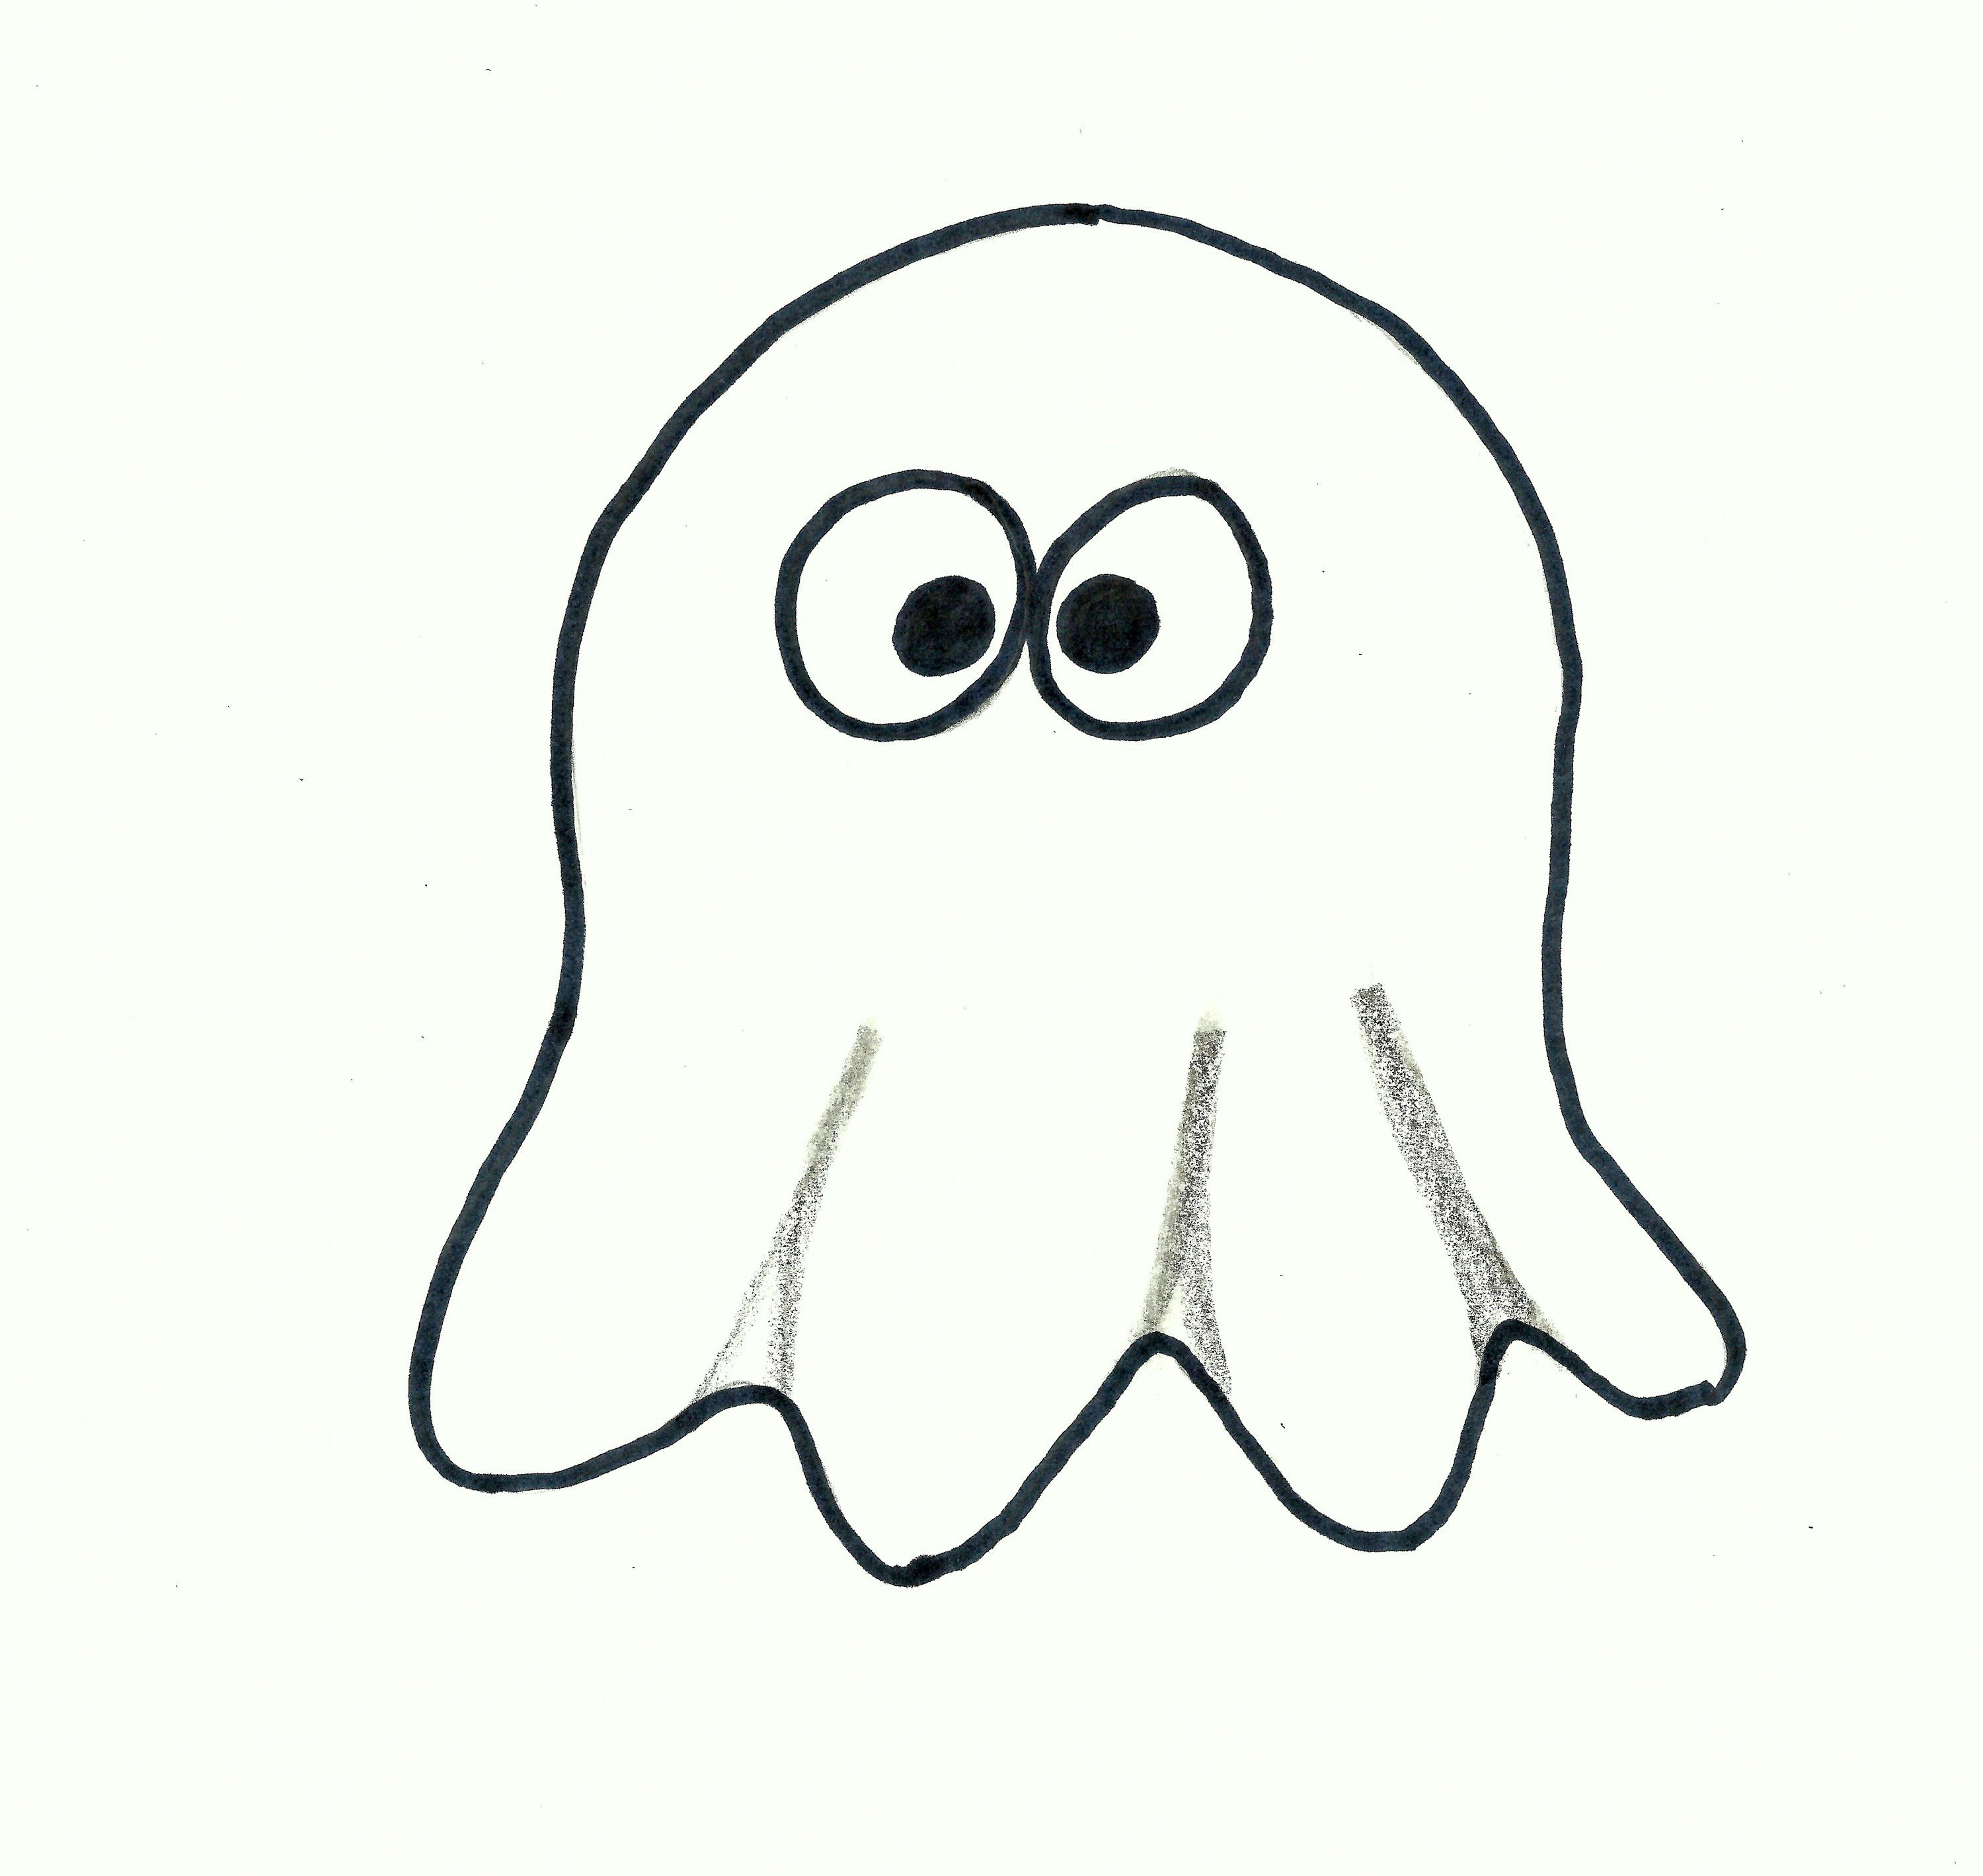 How To Draw A Halloween Ghost Cartoon Easy Drawing Lesson For Kids Youtube Easy Cartoon Drawings Easy Drawings Easy Halloween Drawings